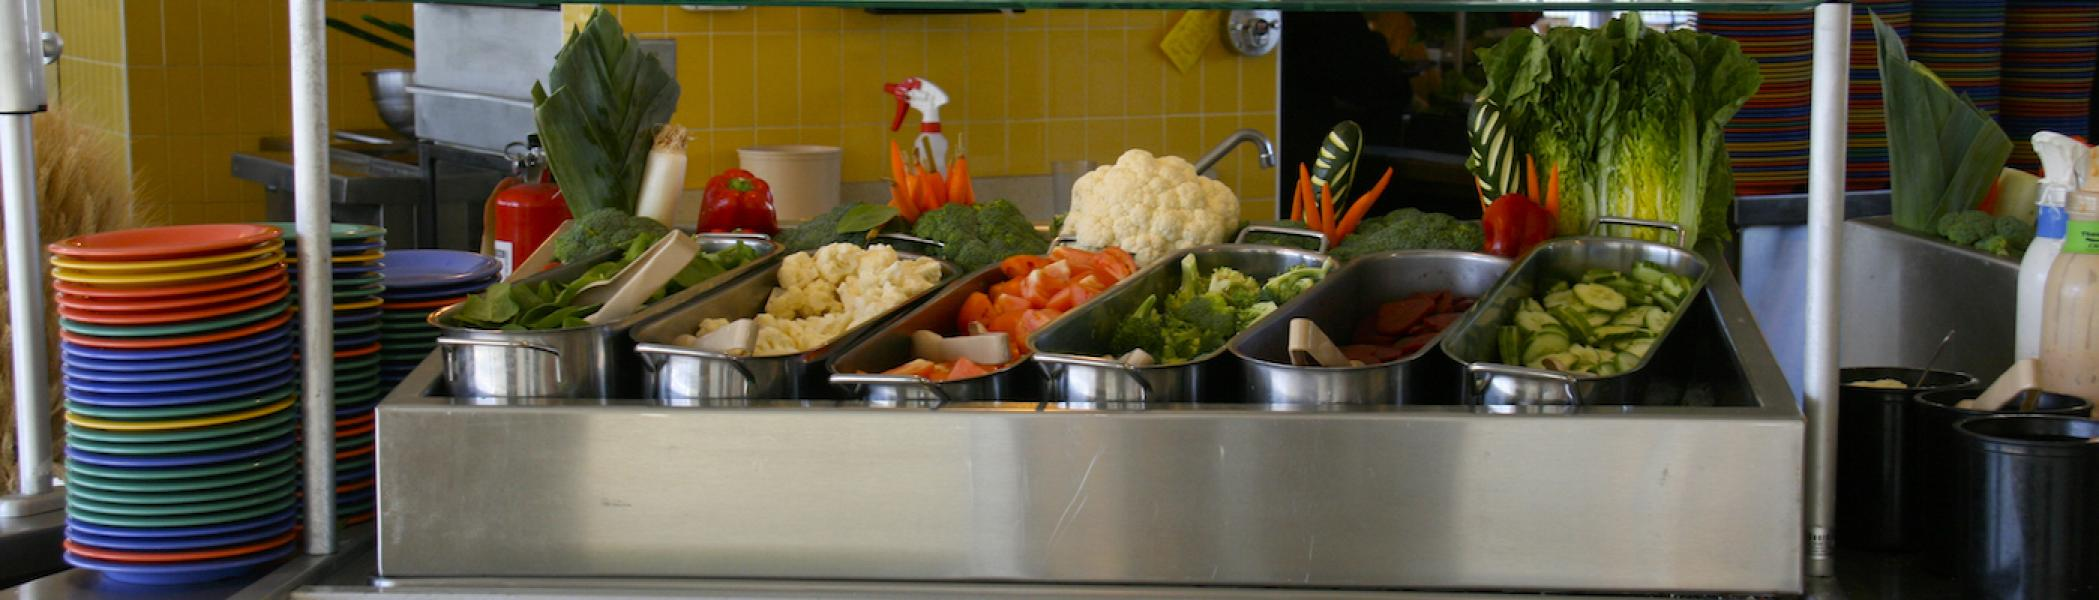 a tray full of food filled with vegetables